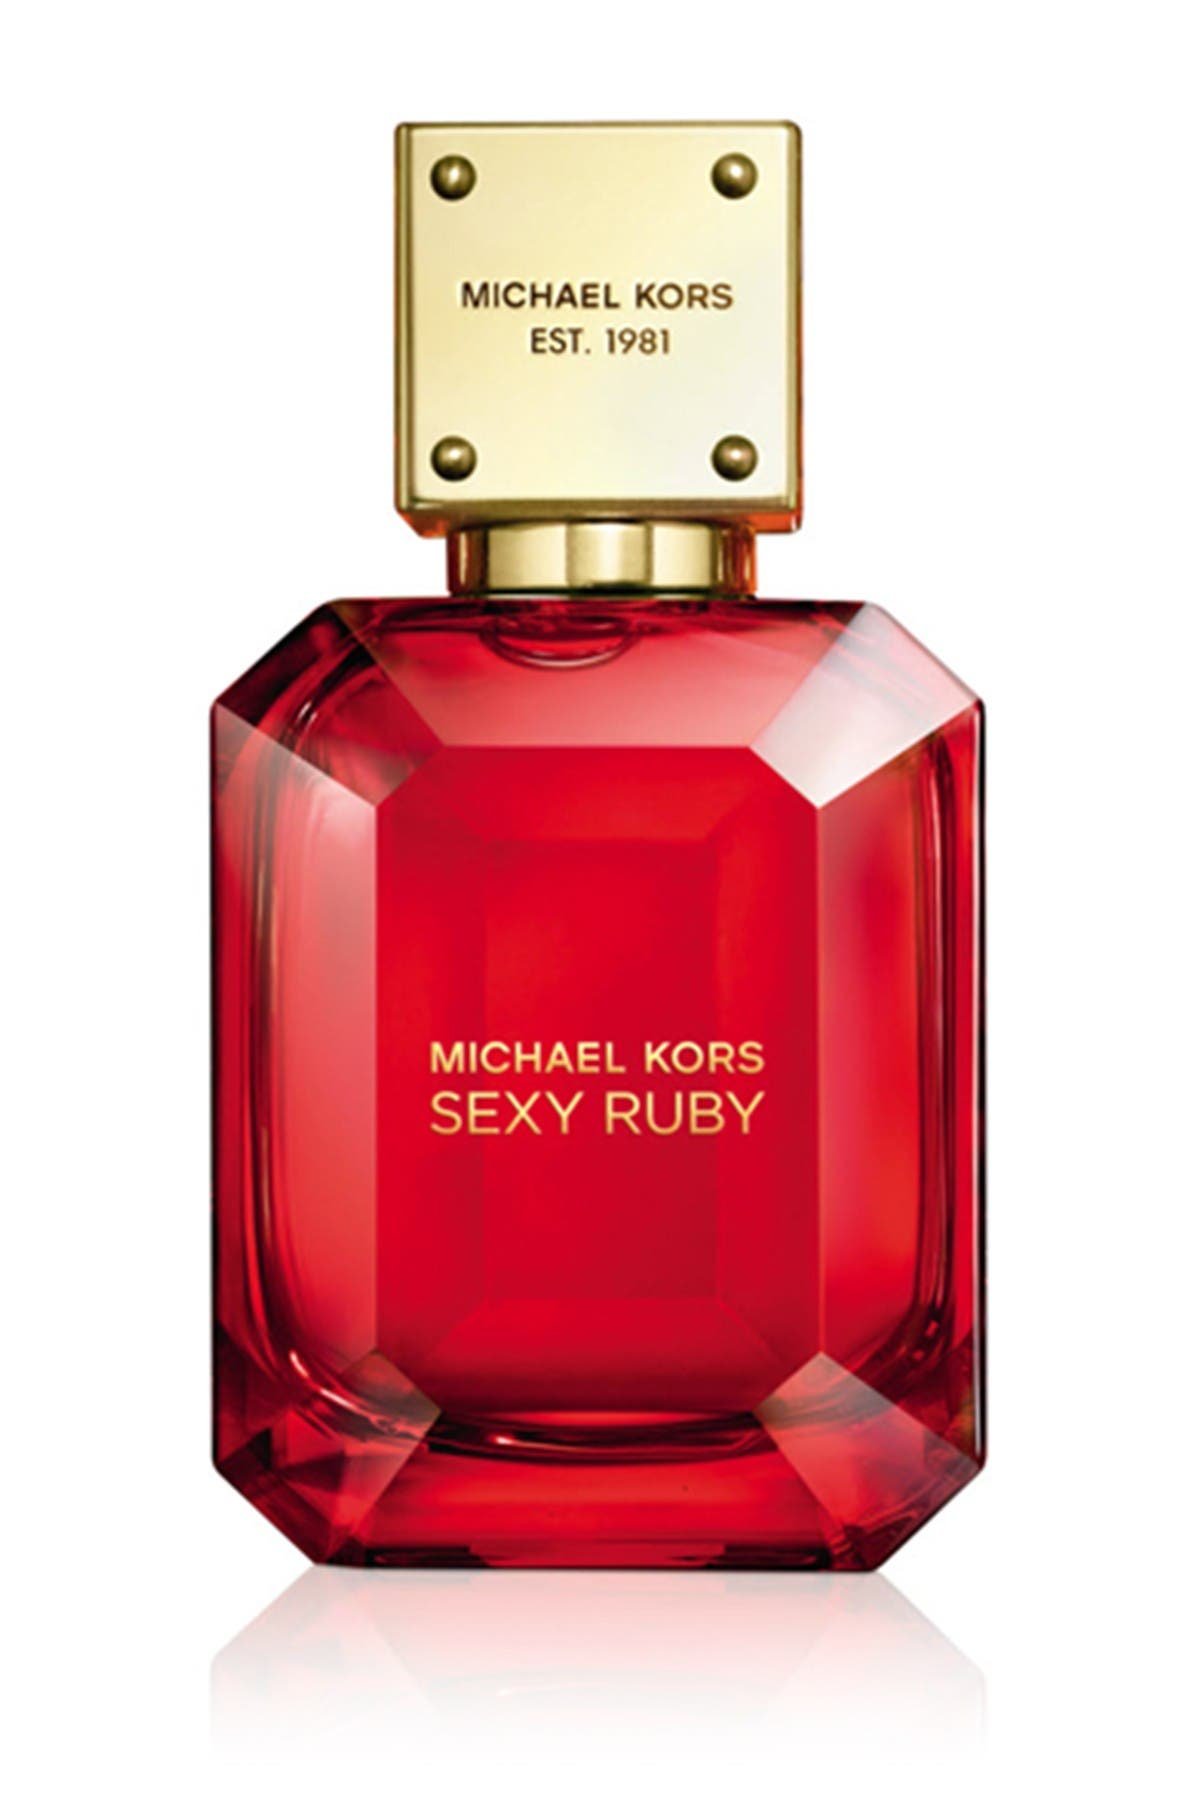 Image of Michael Kors Sexy Ruby Eau de Parfum Spray - 1.7 fl. oz.